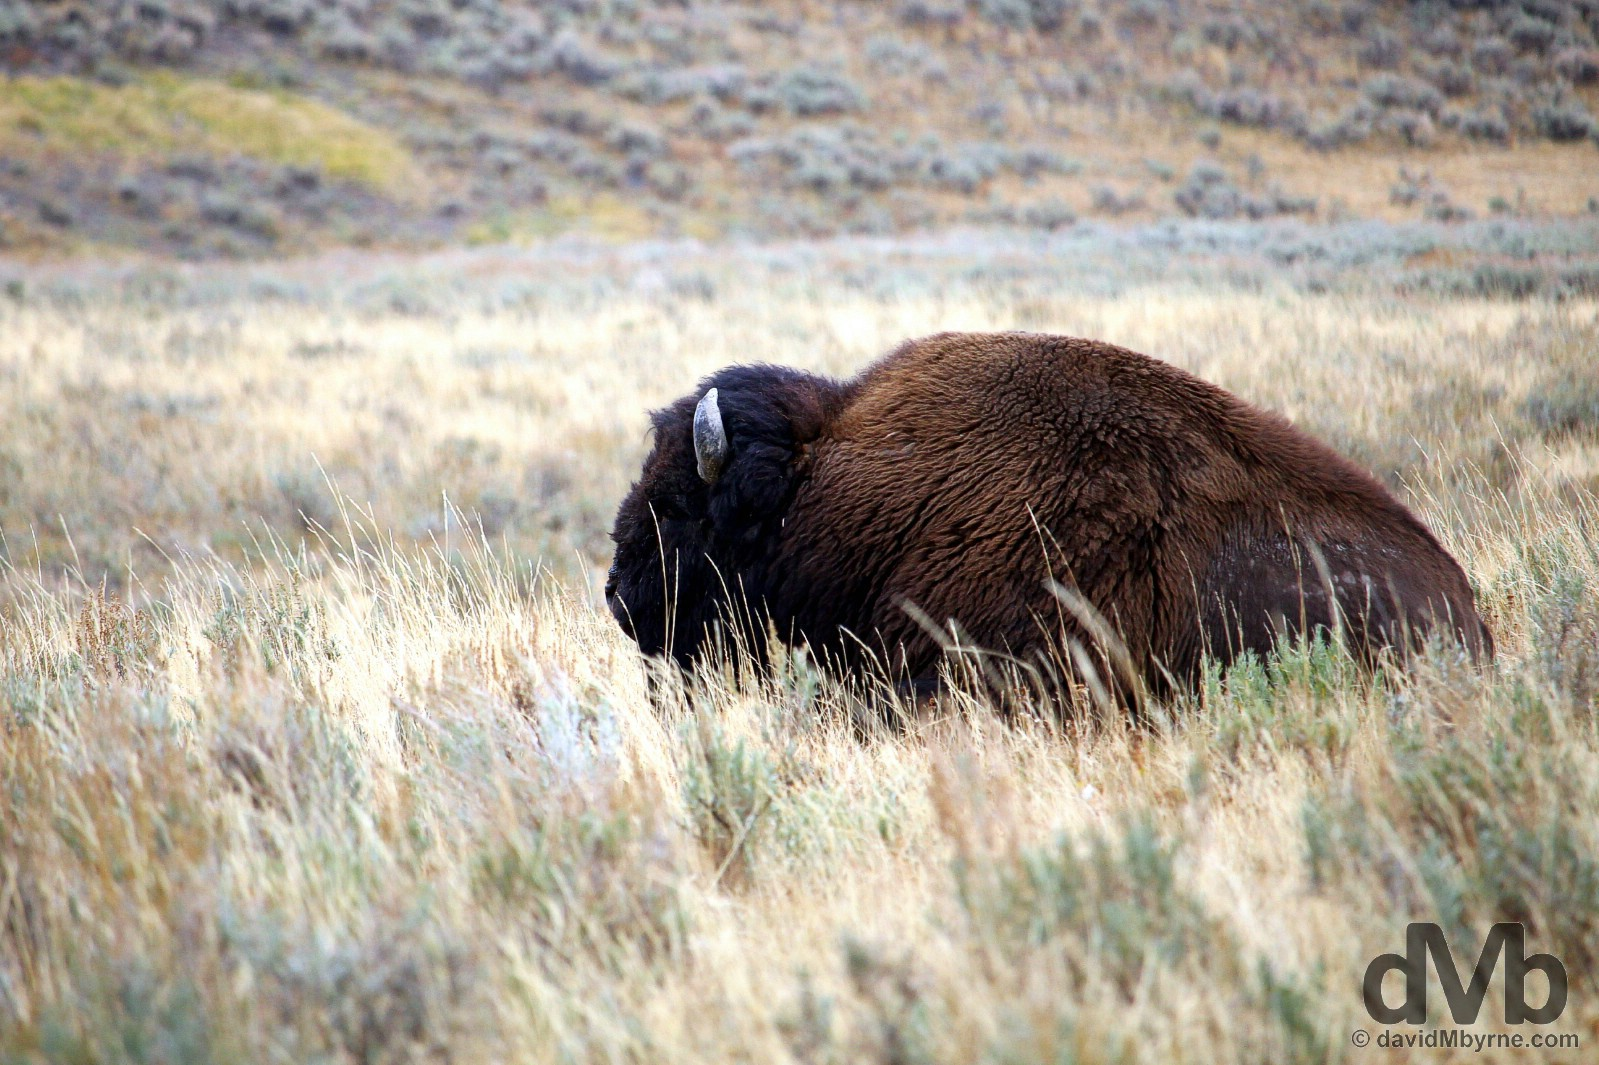 Bison in Hayden Valley, Yellowstone National Park, Wyoming, USA. September 5, 2016.